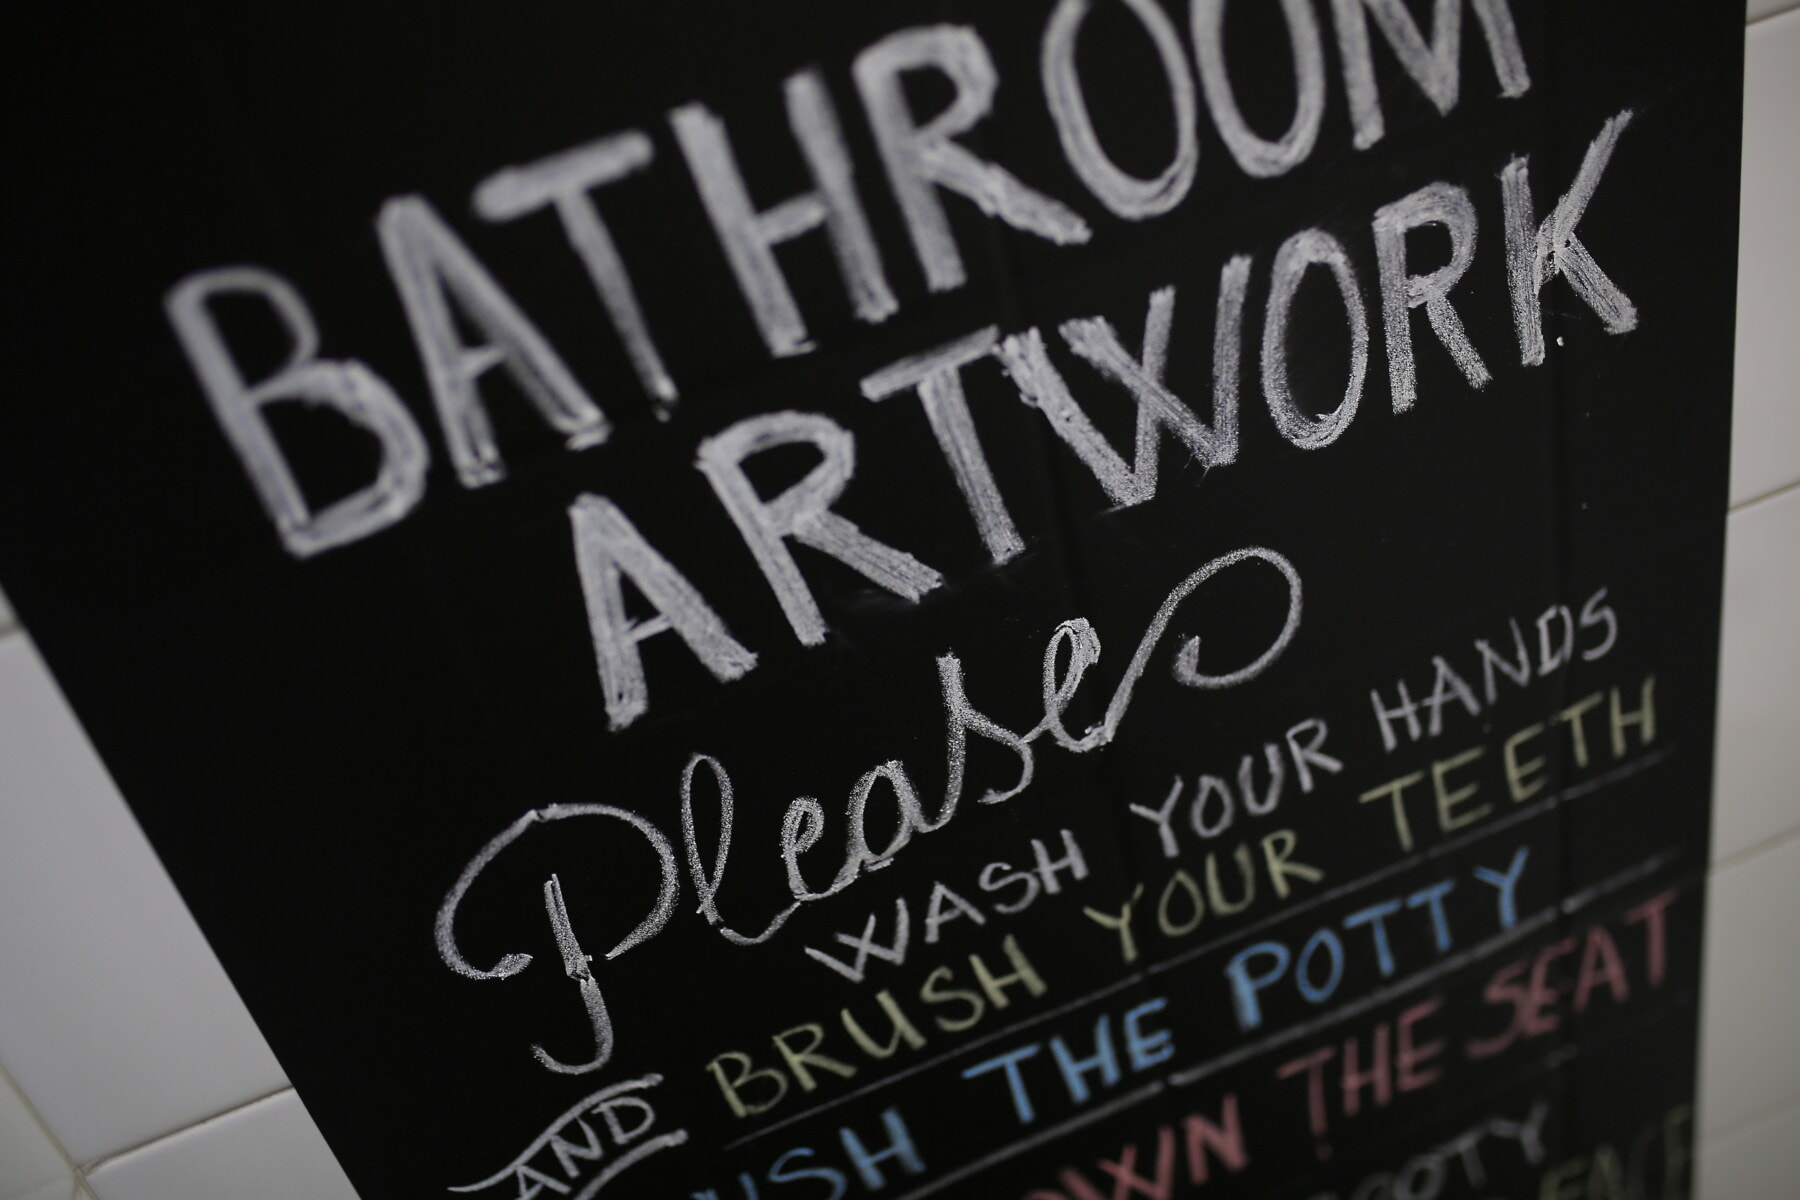 words, blackboard, sign, text, black and white, chalk, word, display, writing, typography